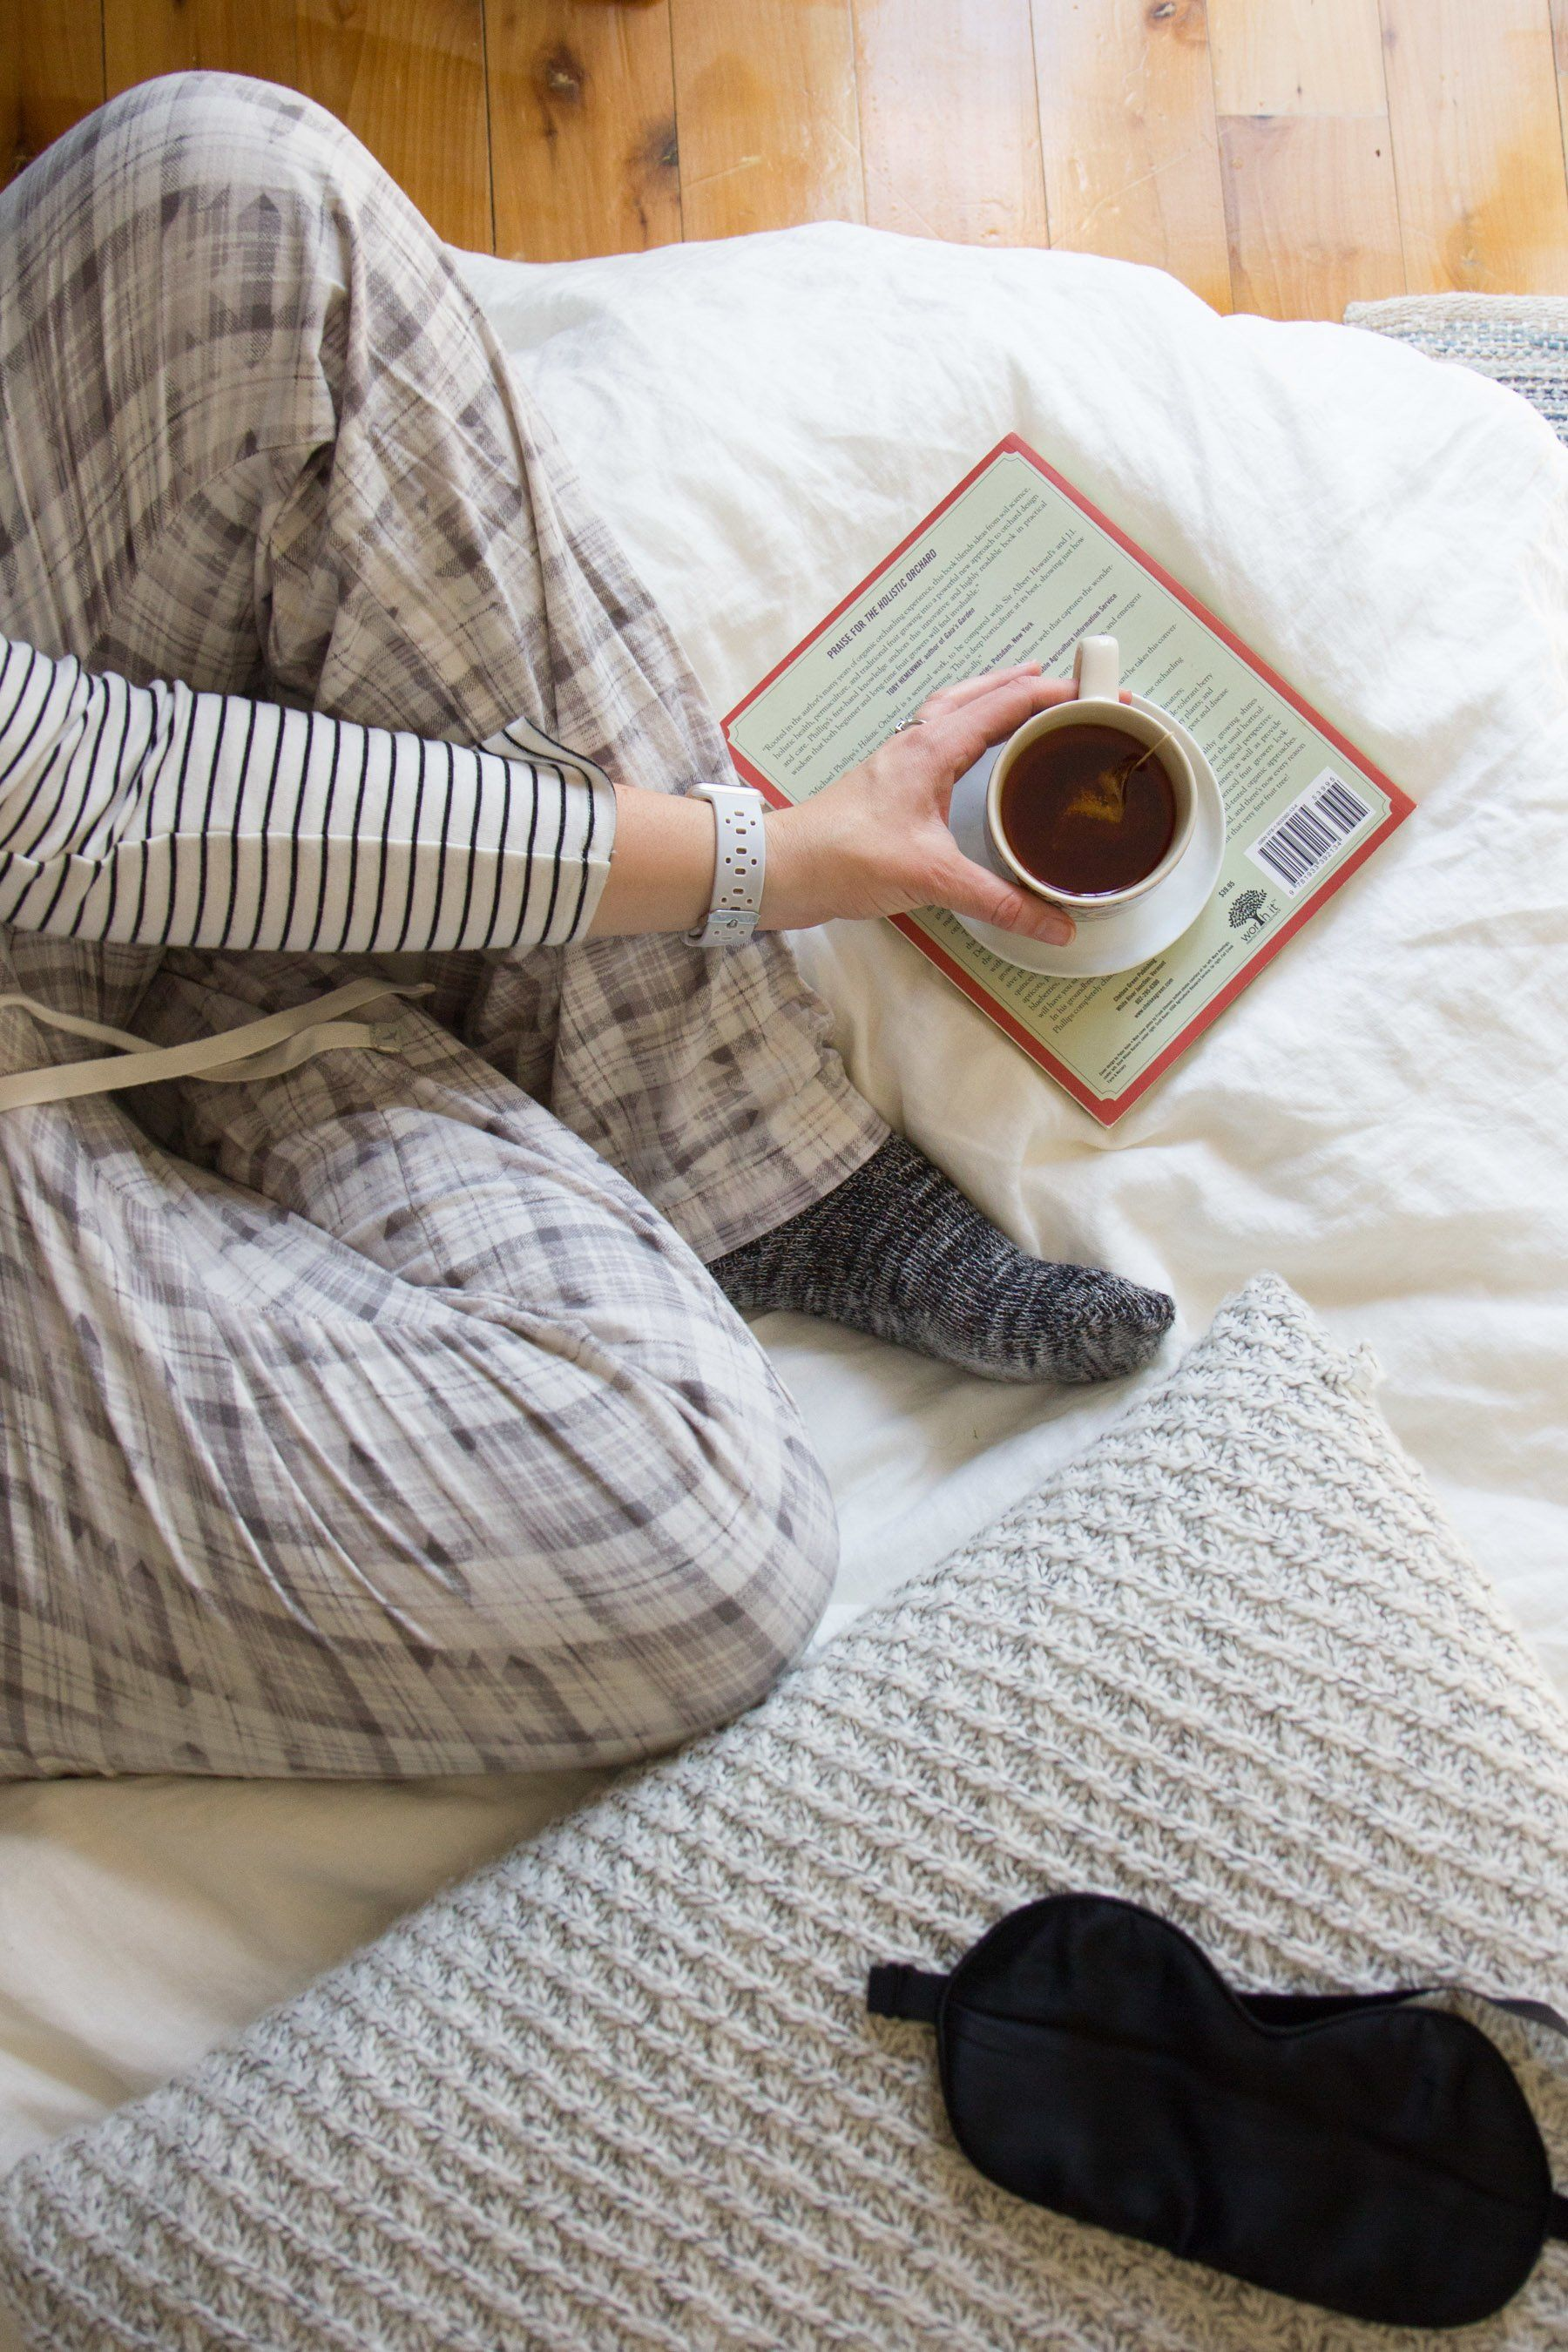 How to Build a Bedtime Routine When You Can't Fall Asleep